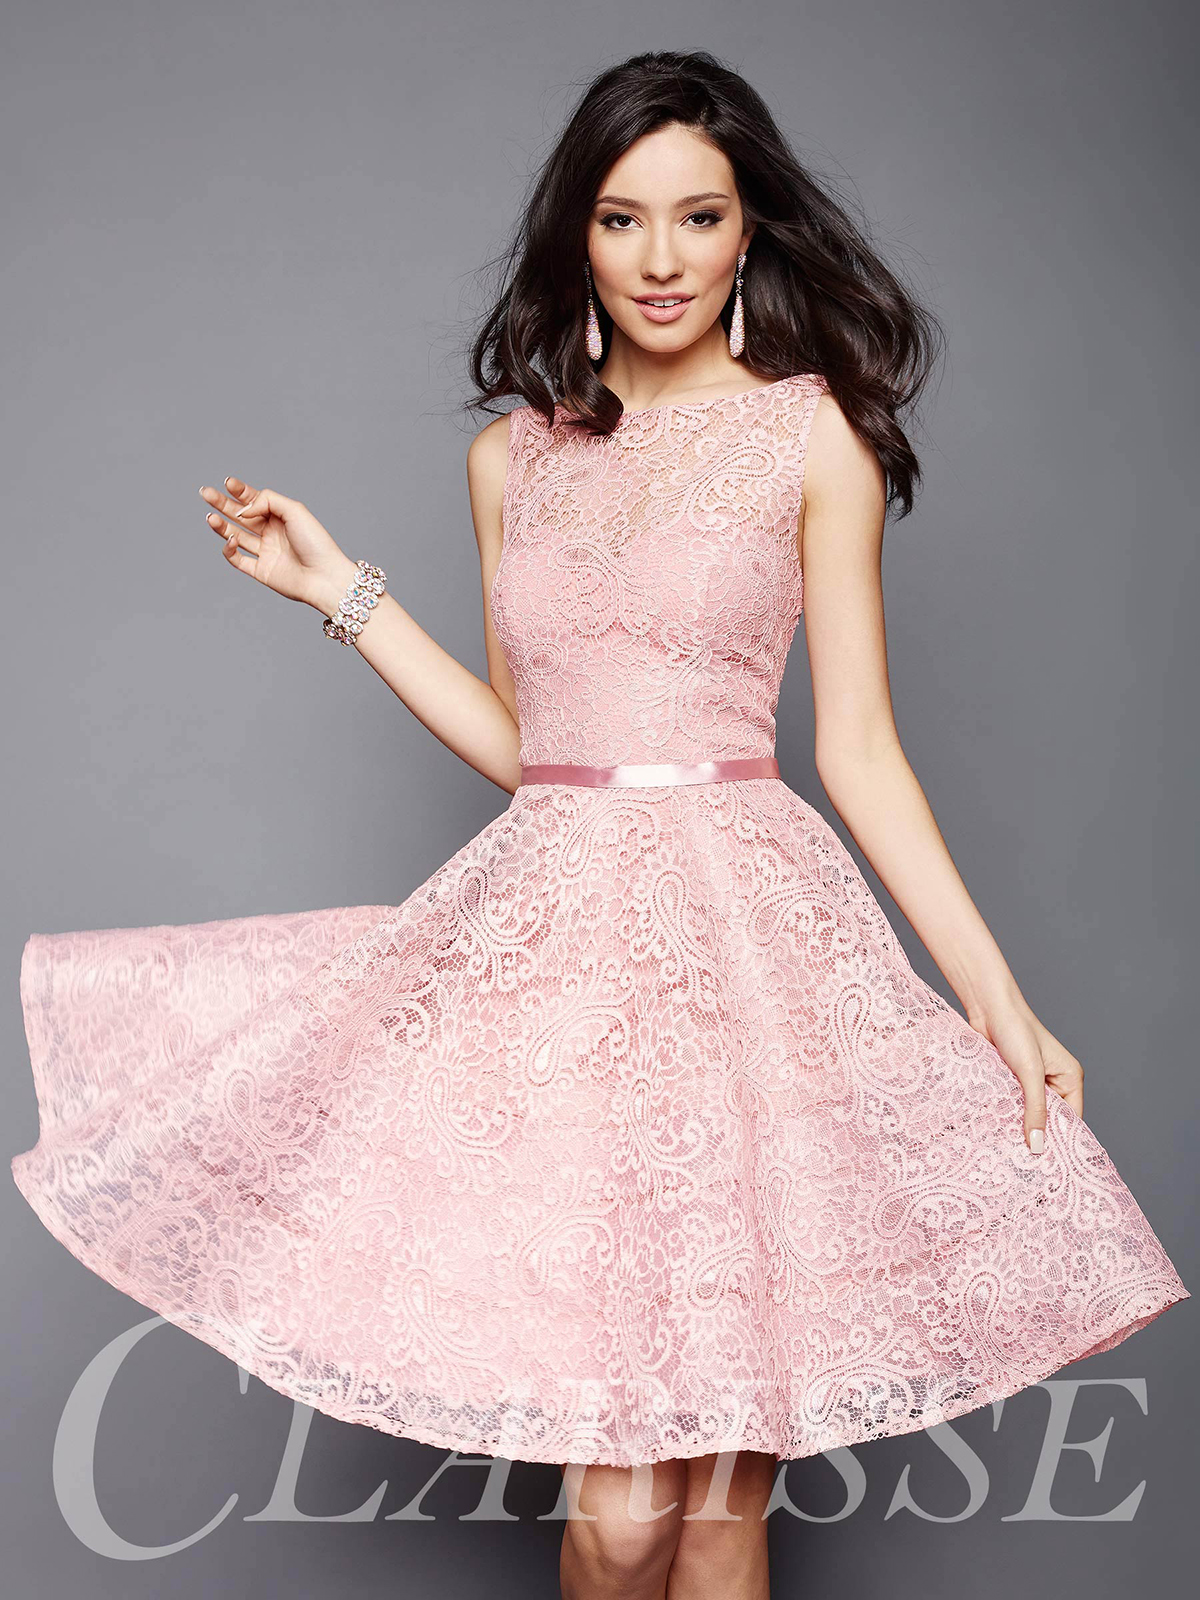 Clarisse Homecoming Dress 3335 Promgirl